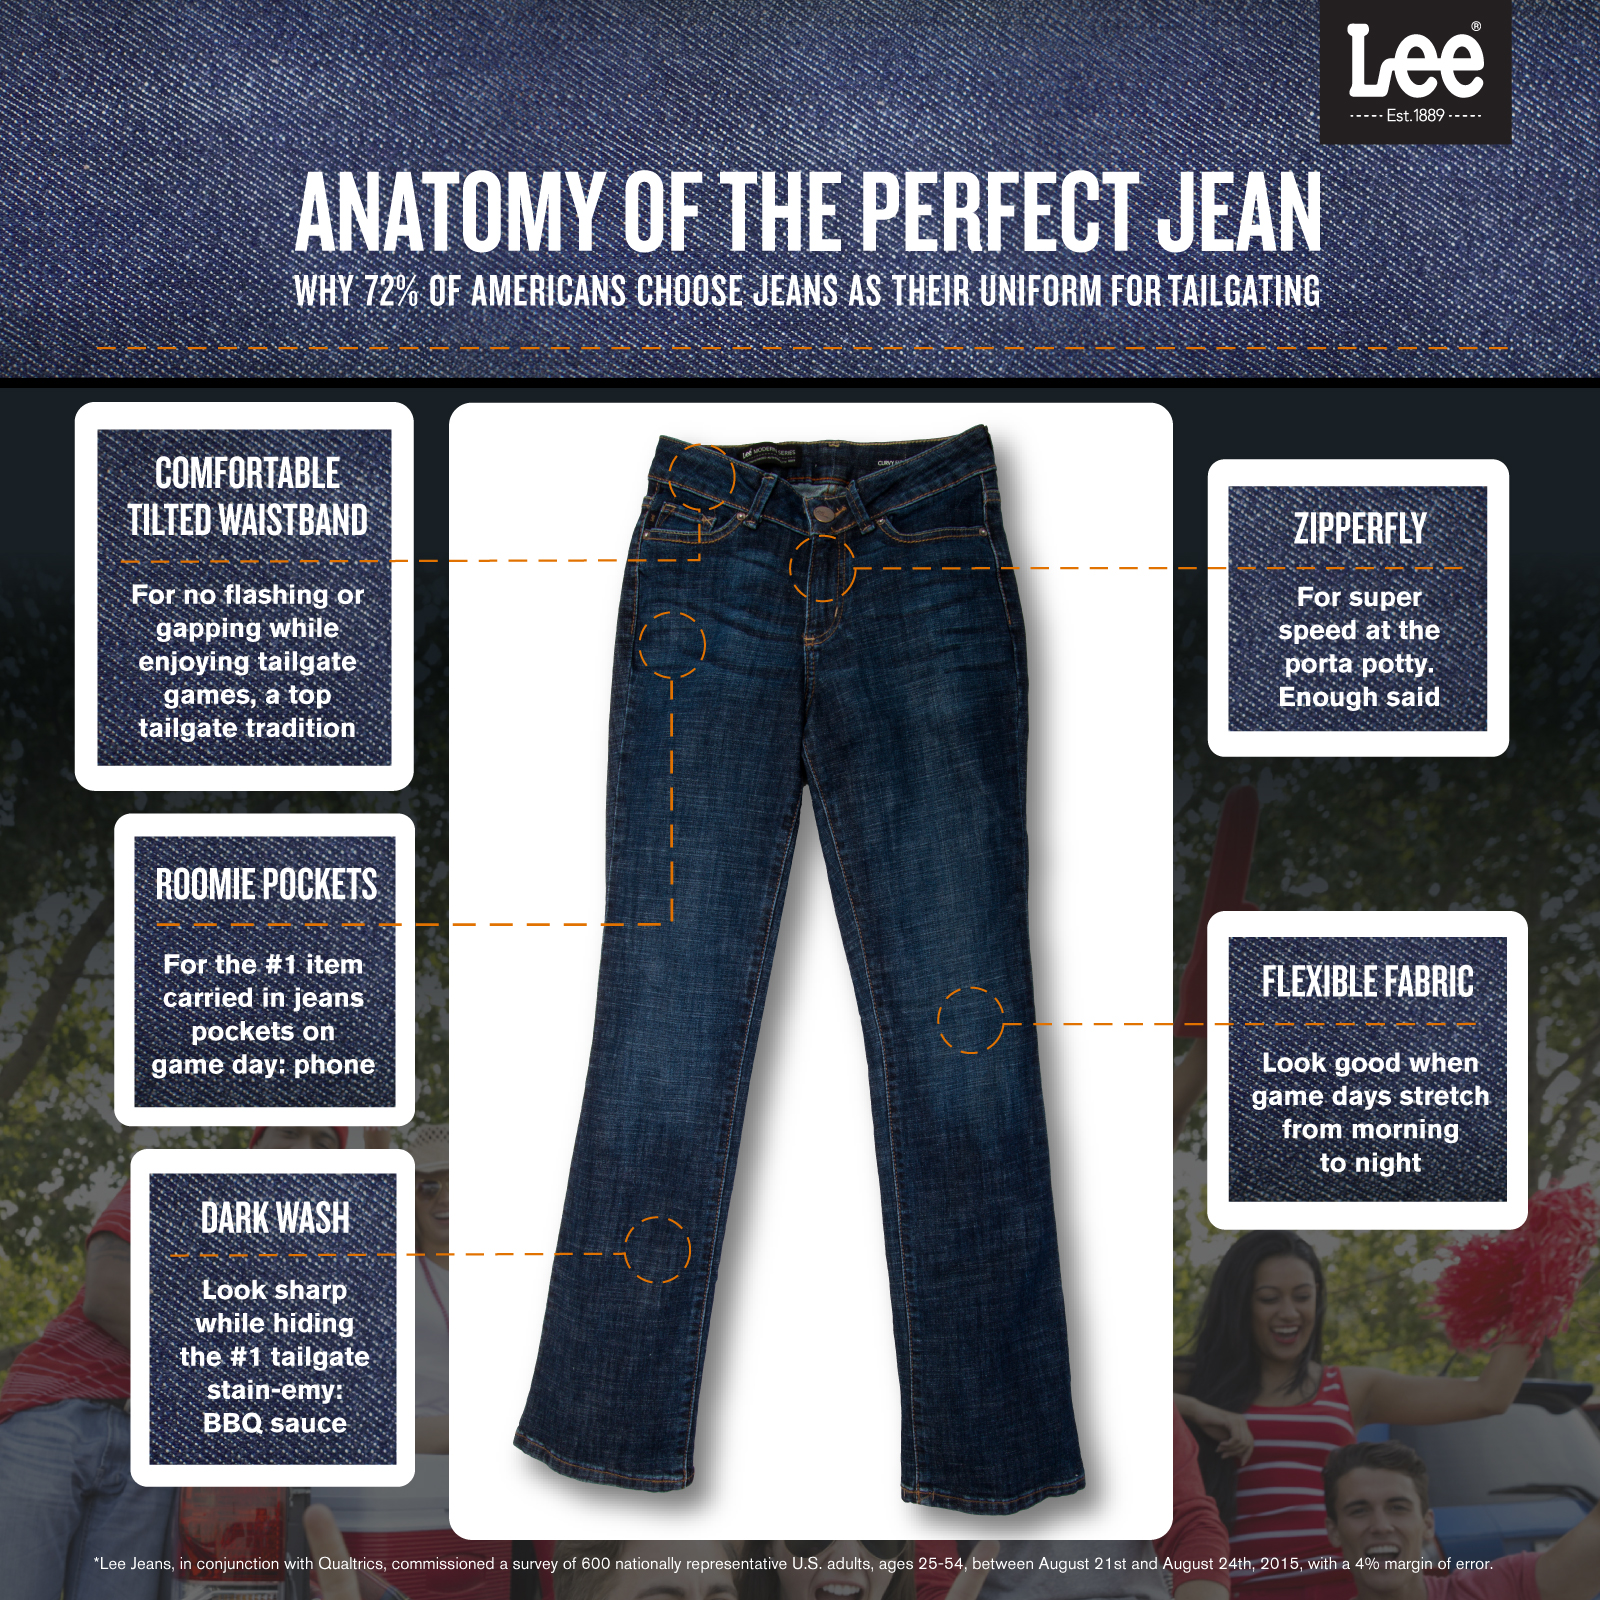 The ABCD Diaries: Lee: The Anatomy of the Perfect Jean